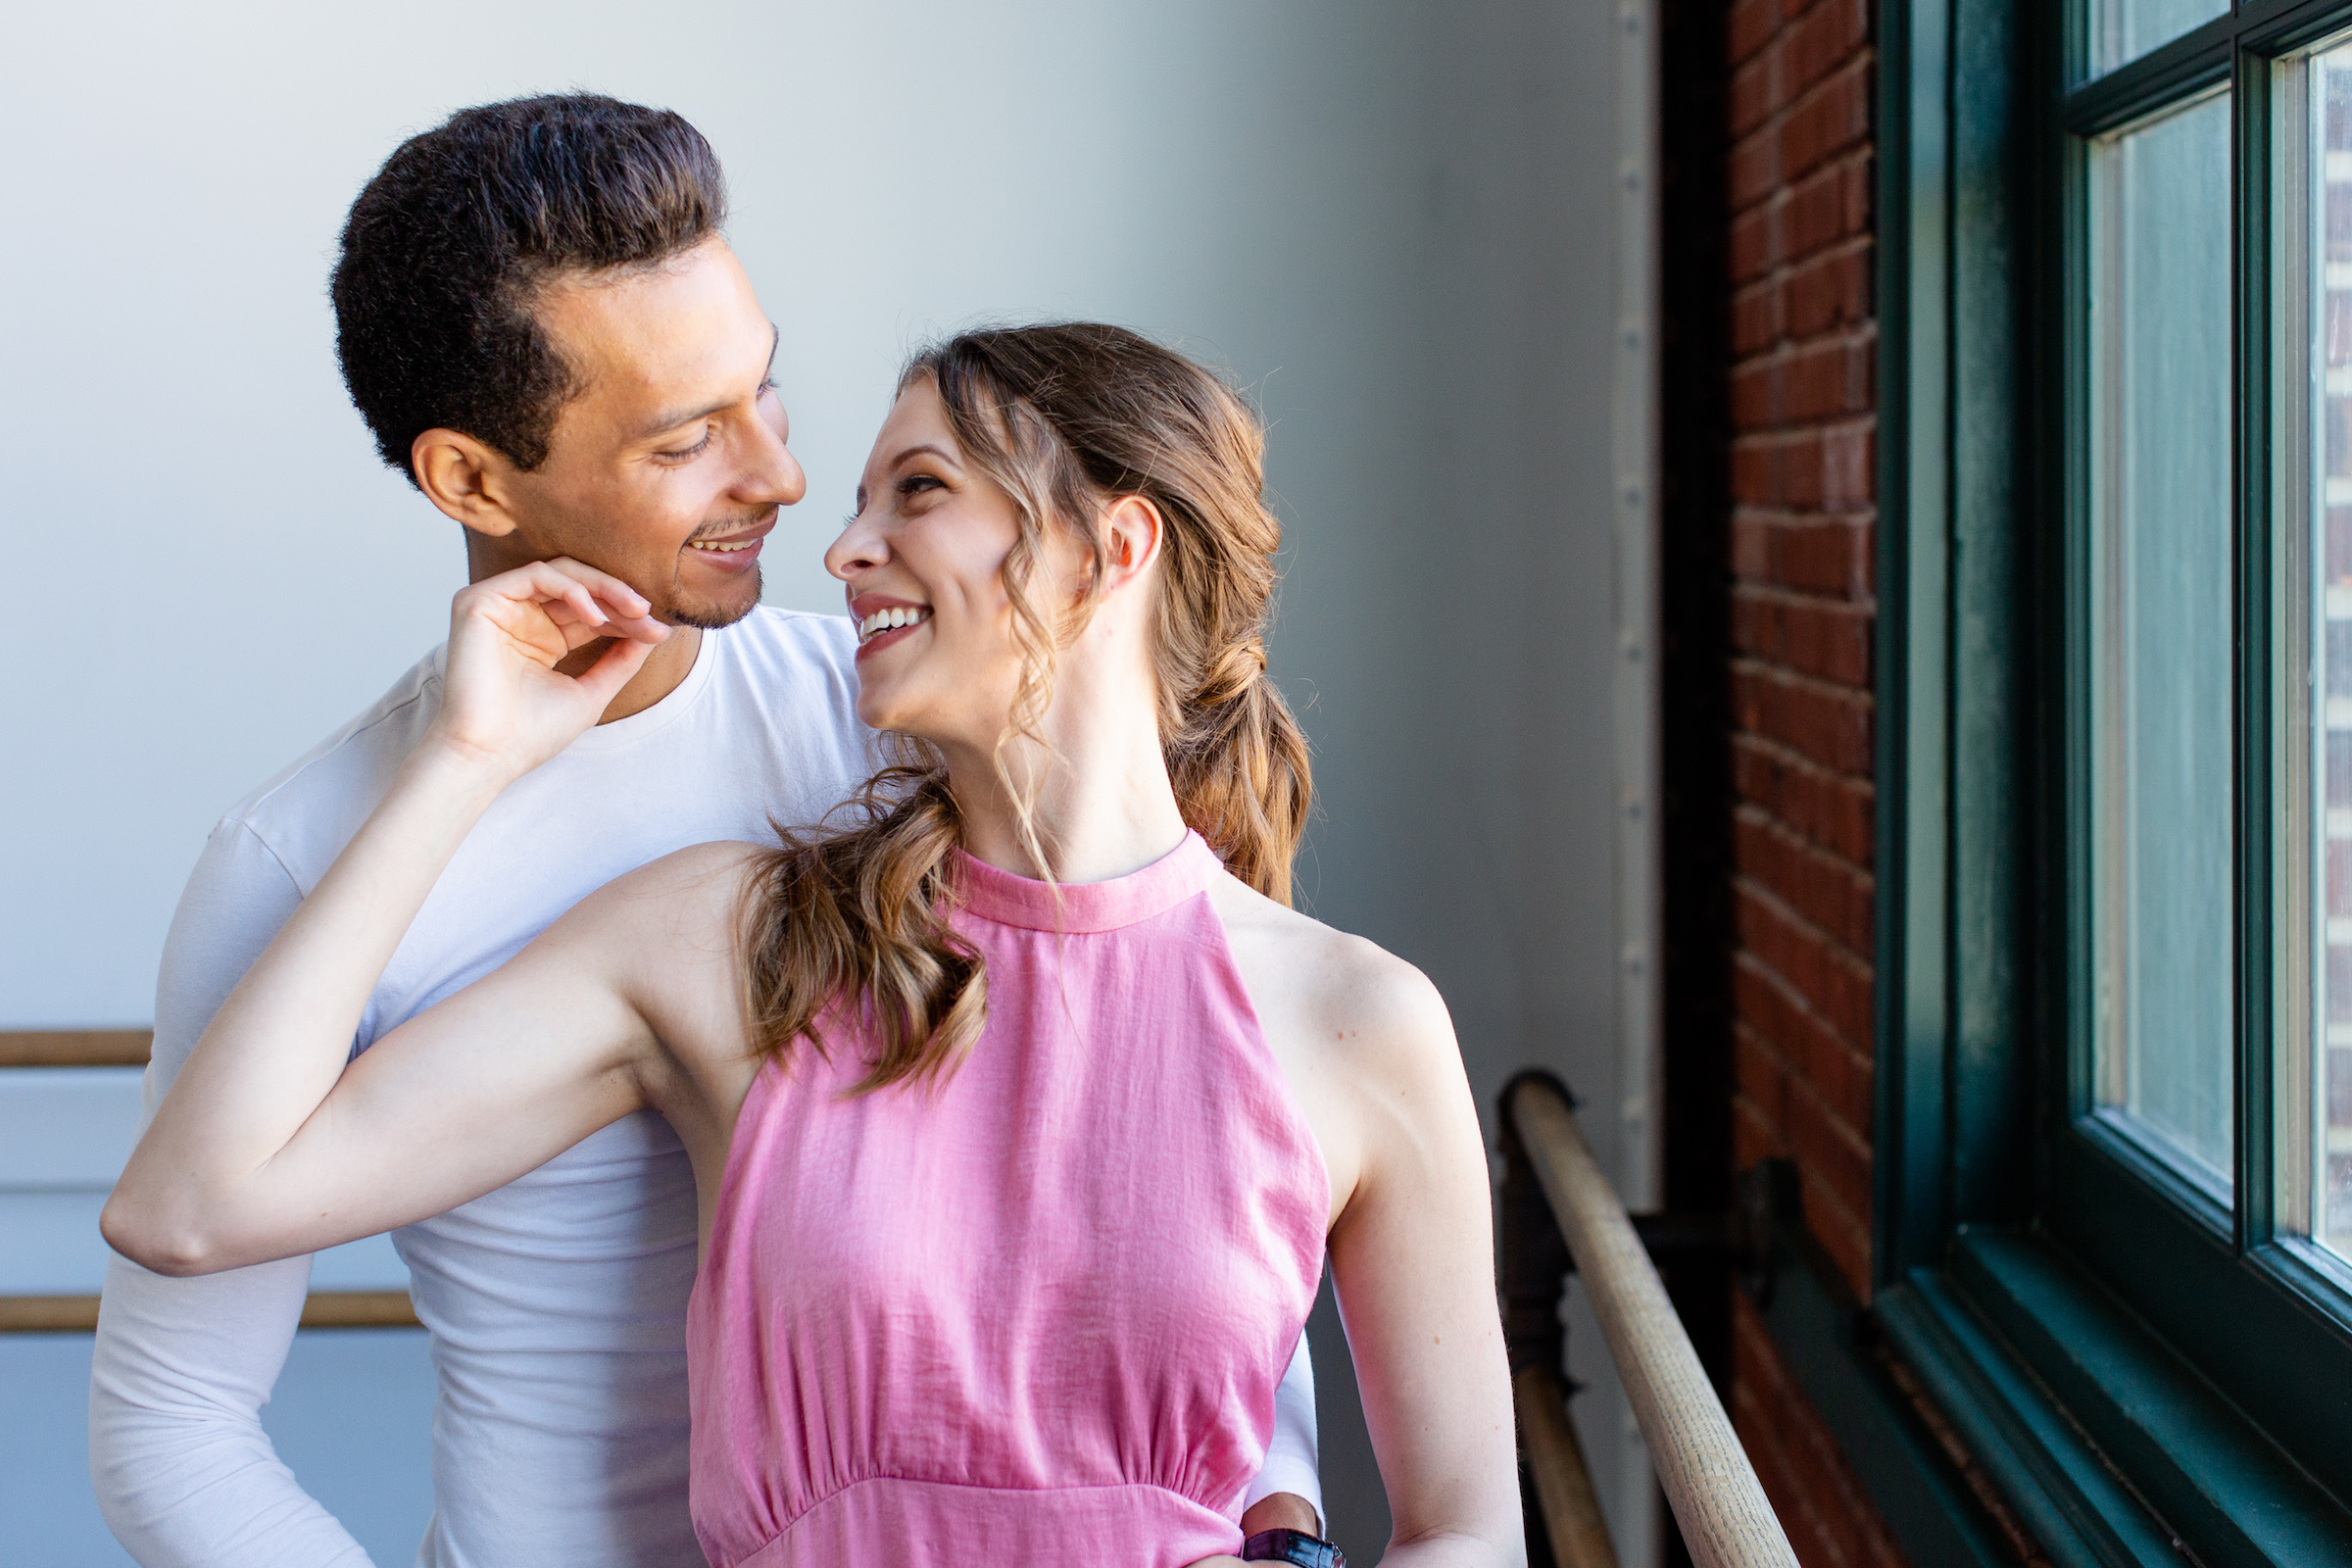 LOVE AT FIRST PLIÉ: Dancers find love through artistry and understanding